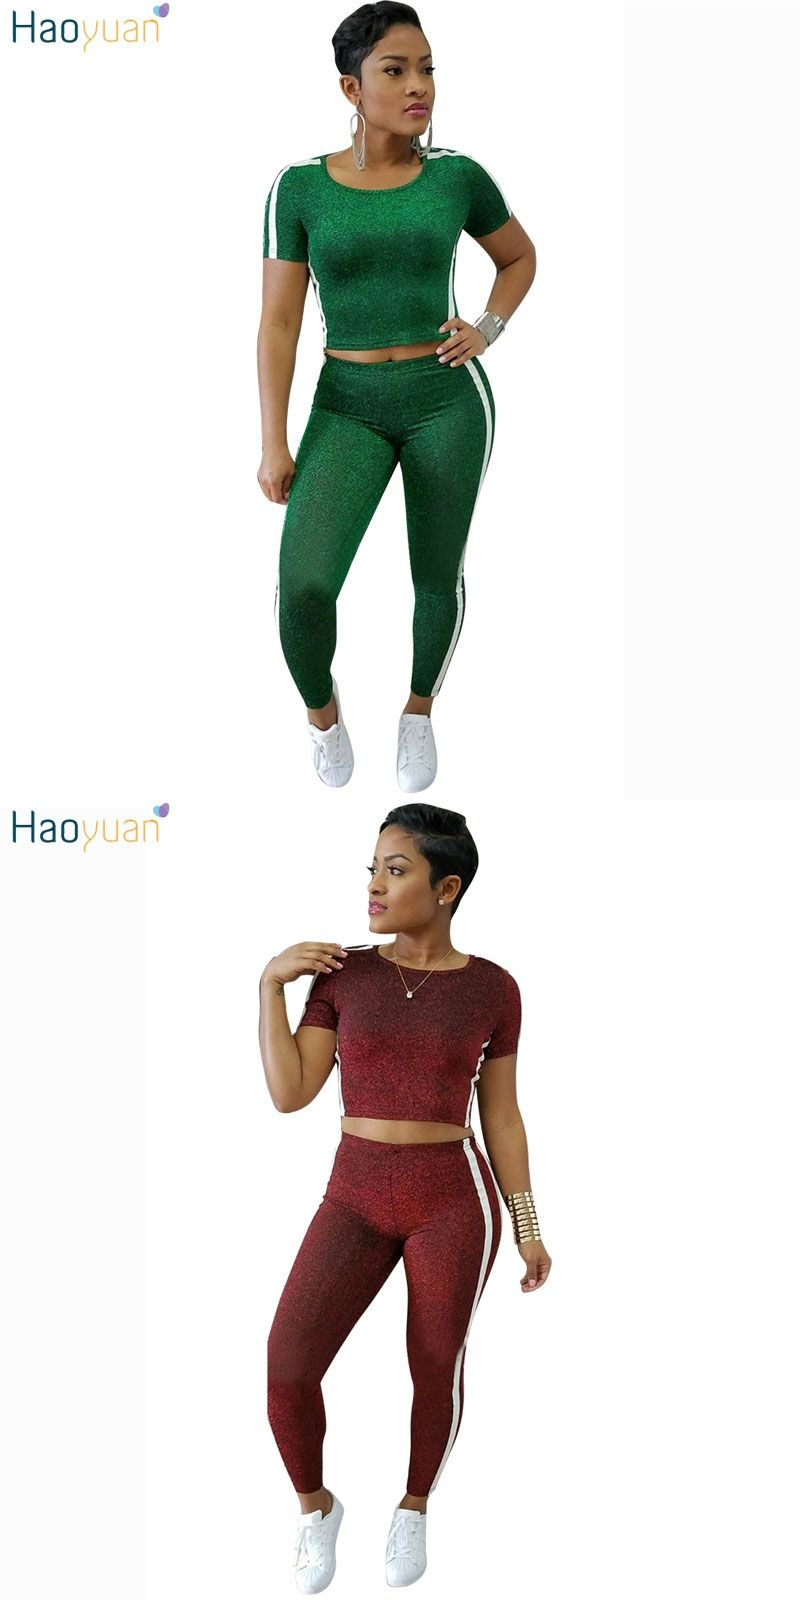 56cf76bedaa HAOYUAN Two 2 piece set womens elegant side striped short sleeve top and  pants suits casual